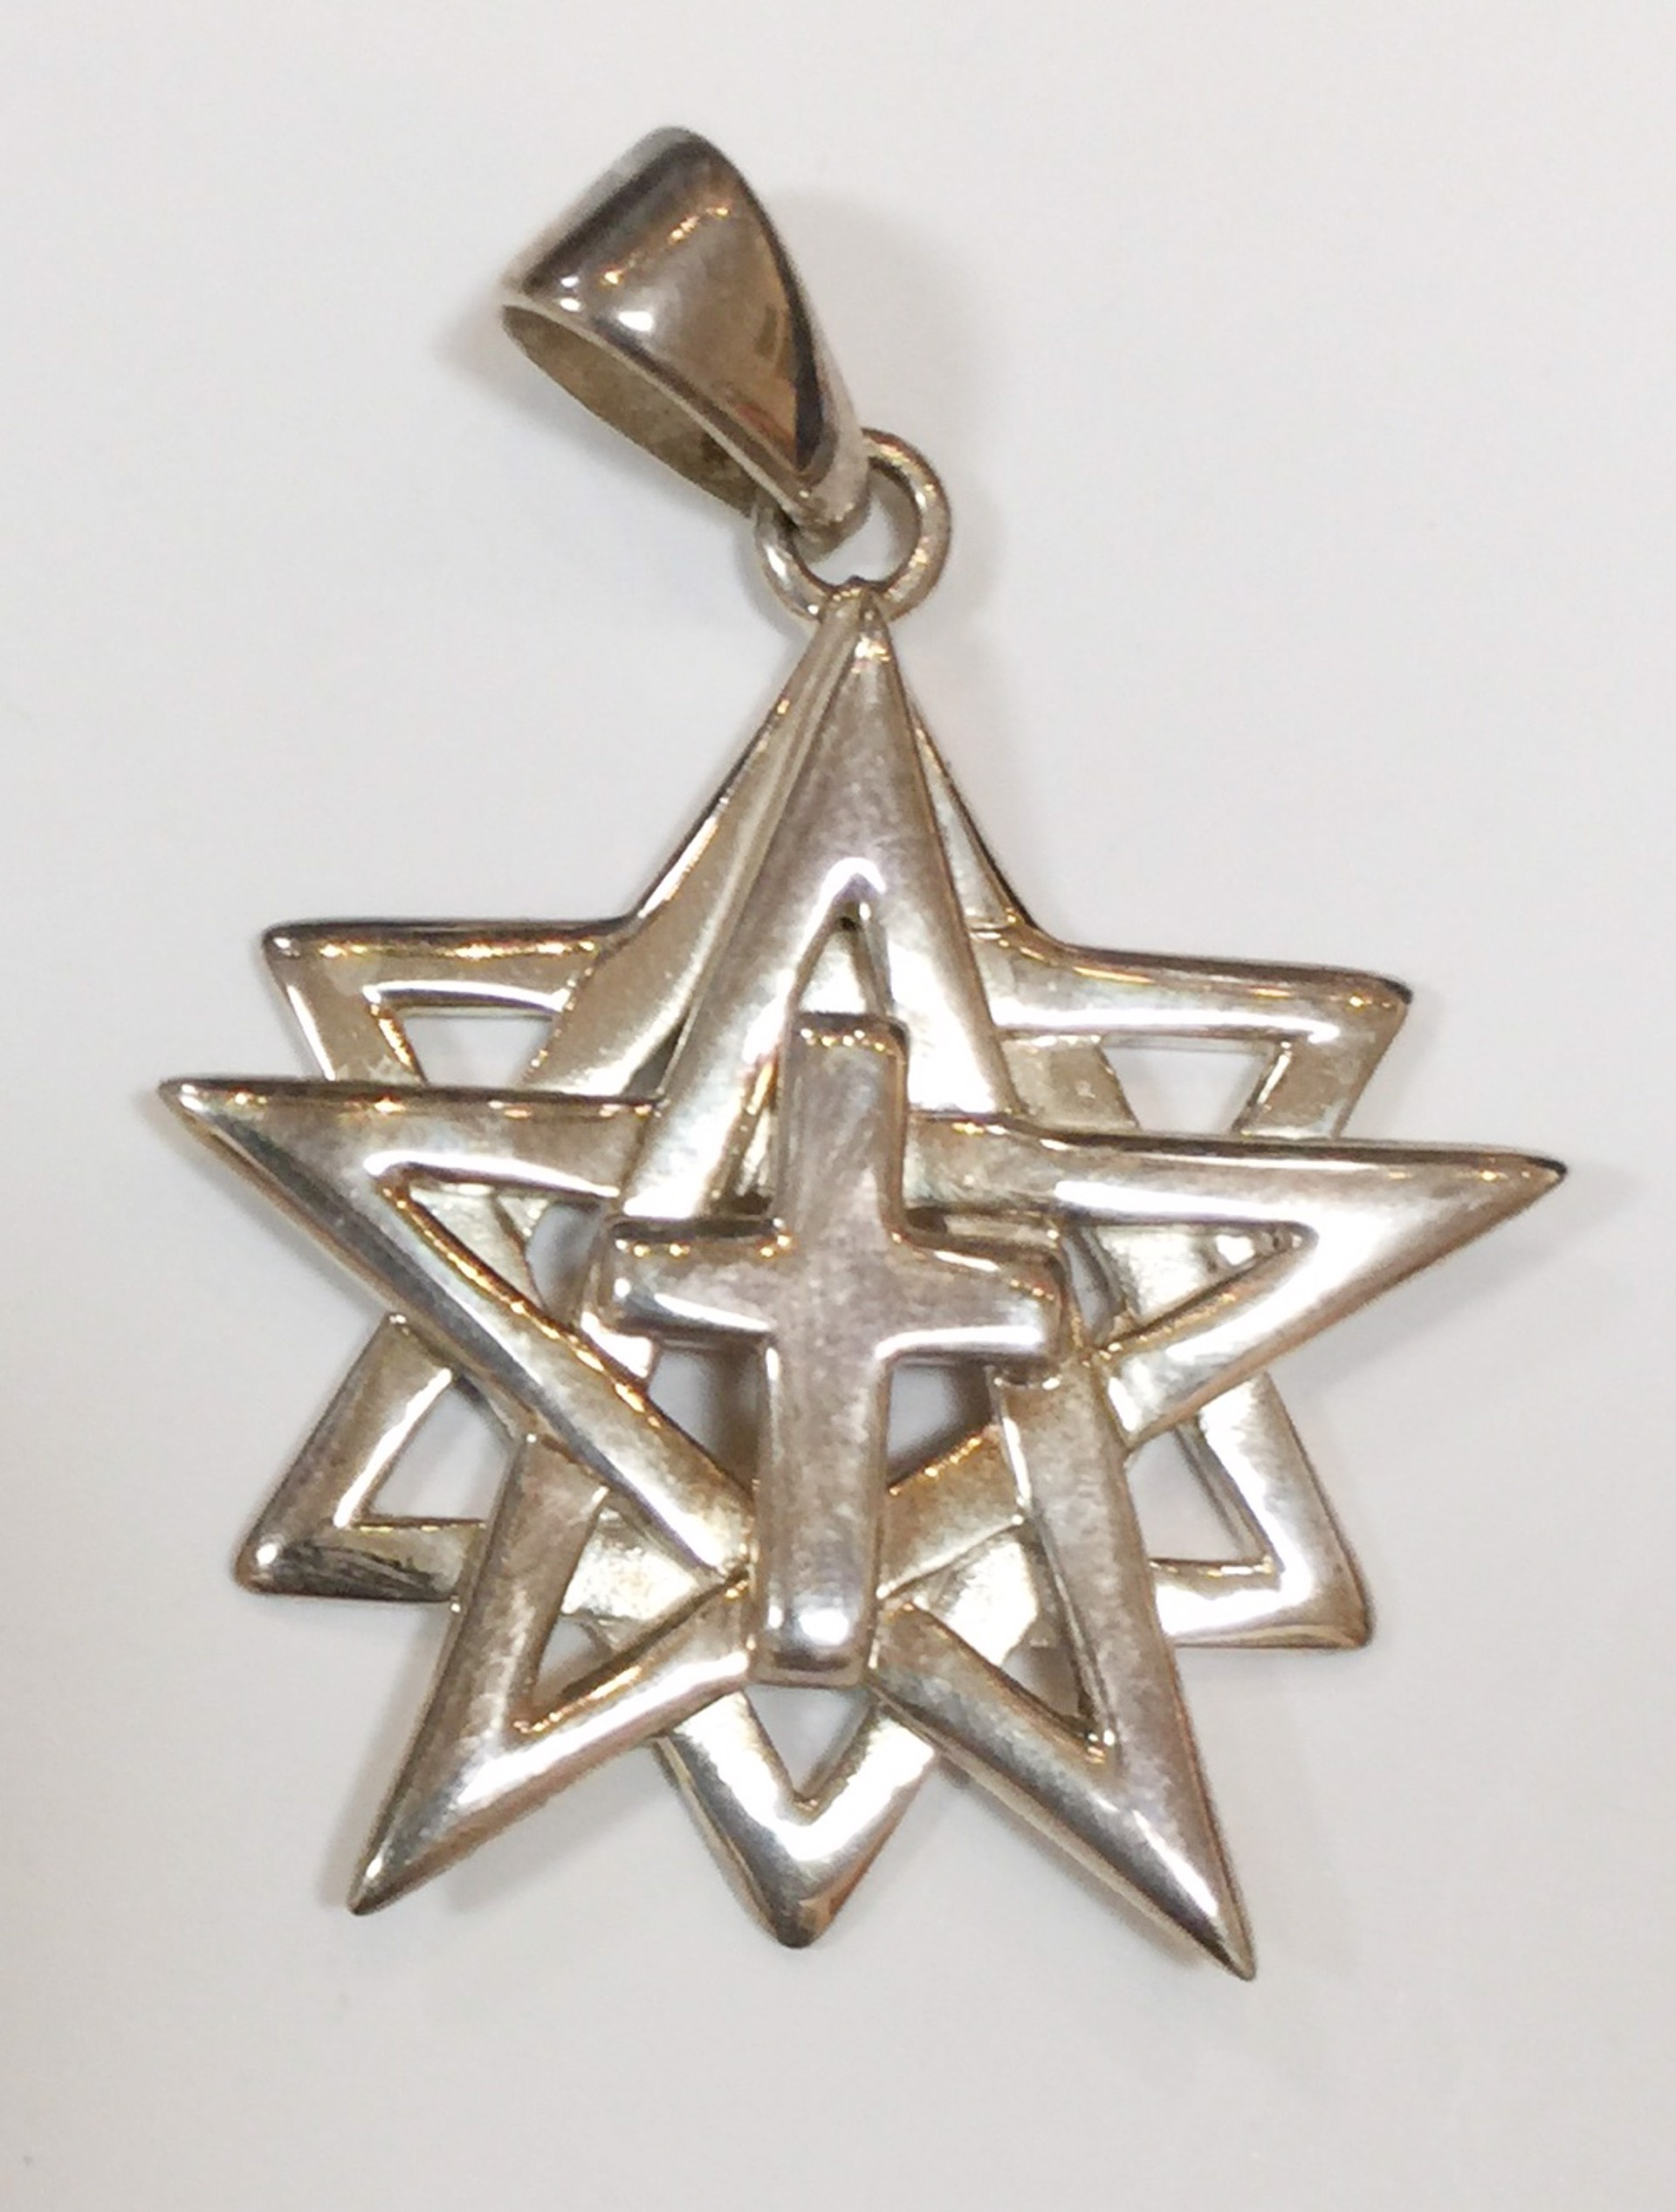 Pendant - The World Cross of Sterling Silver 7568 by Deanne McKeown